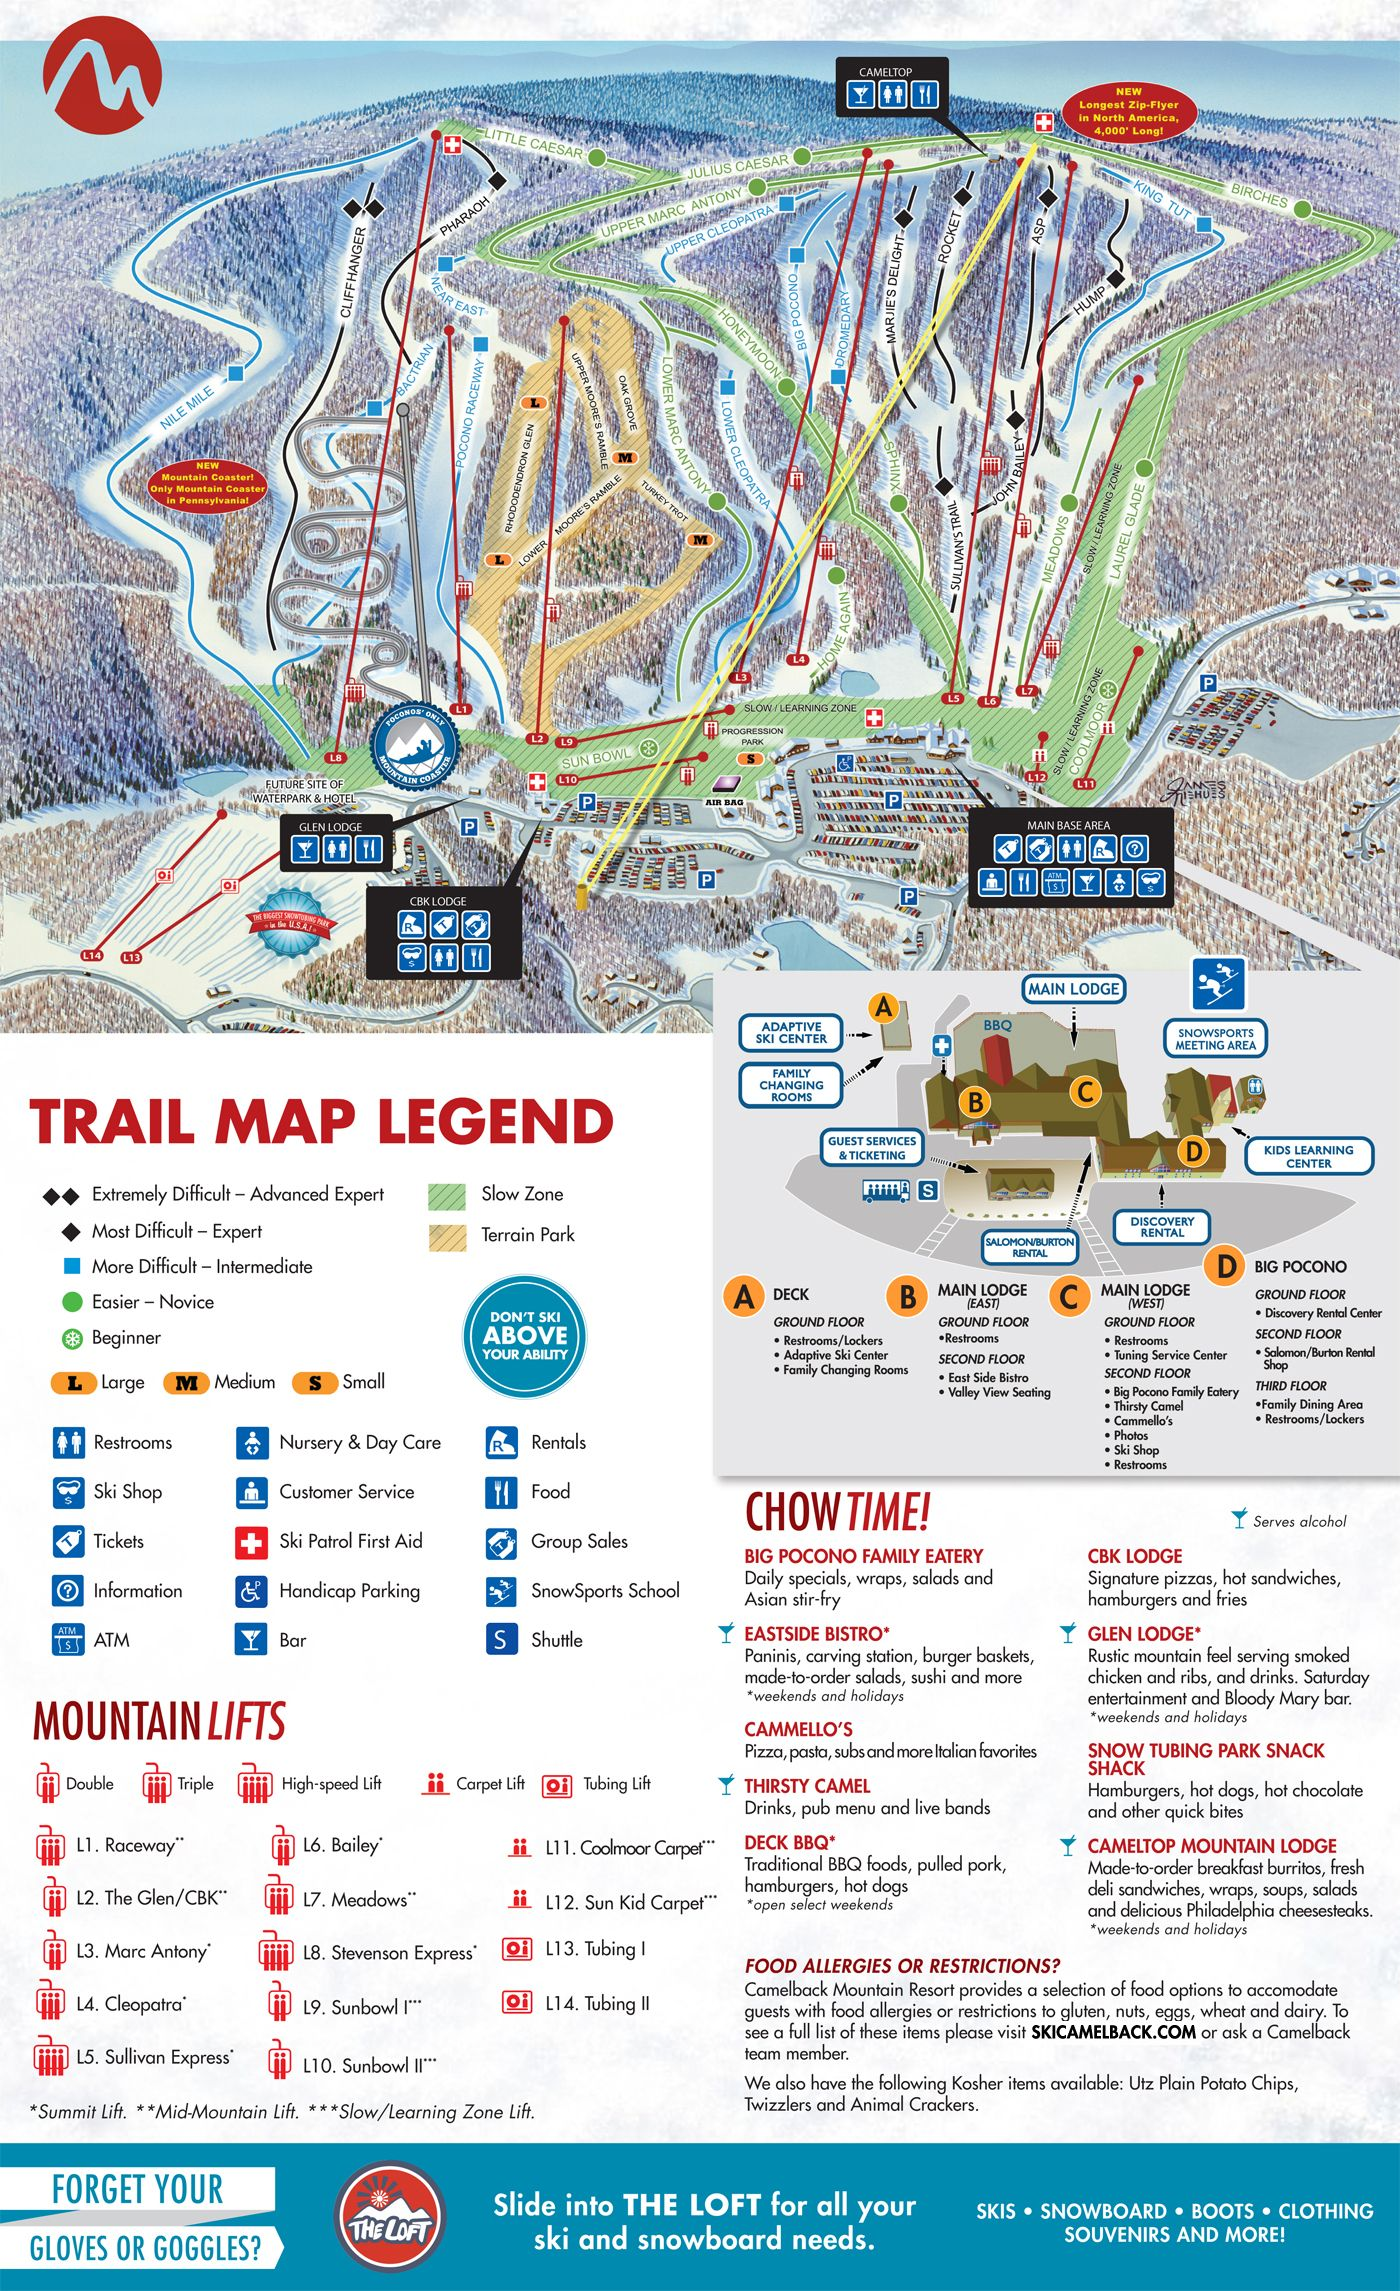 camelback ski resort | rei sells discounted lift tickets to